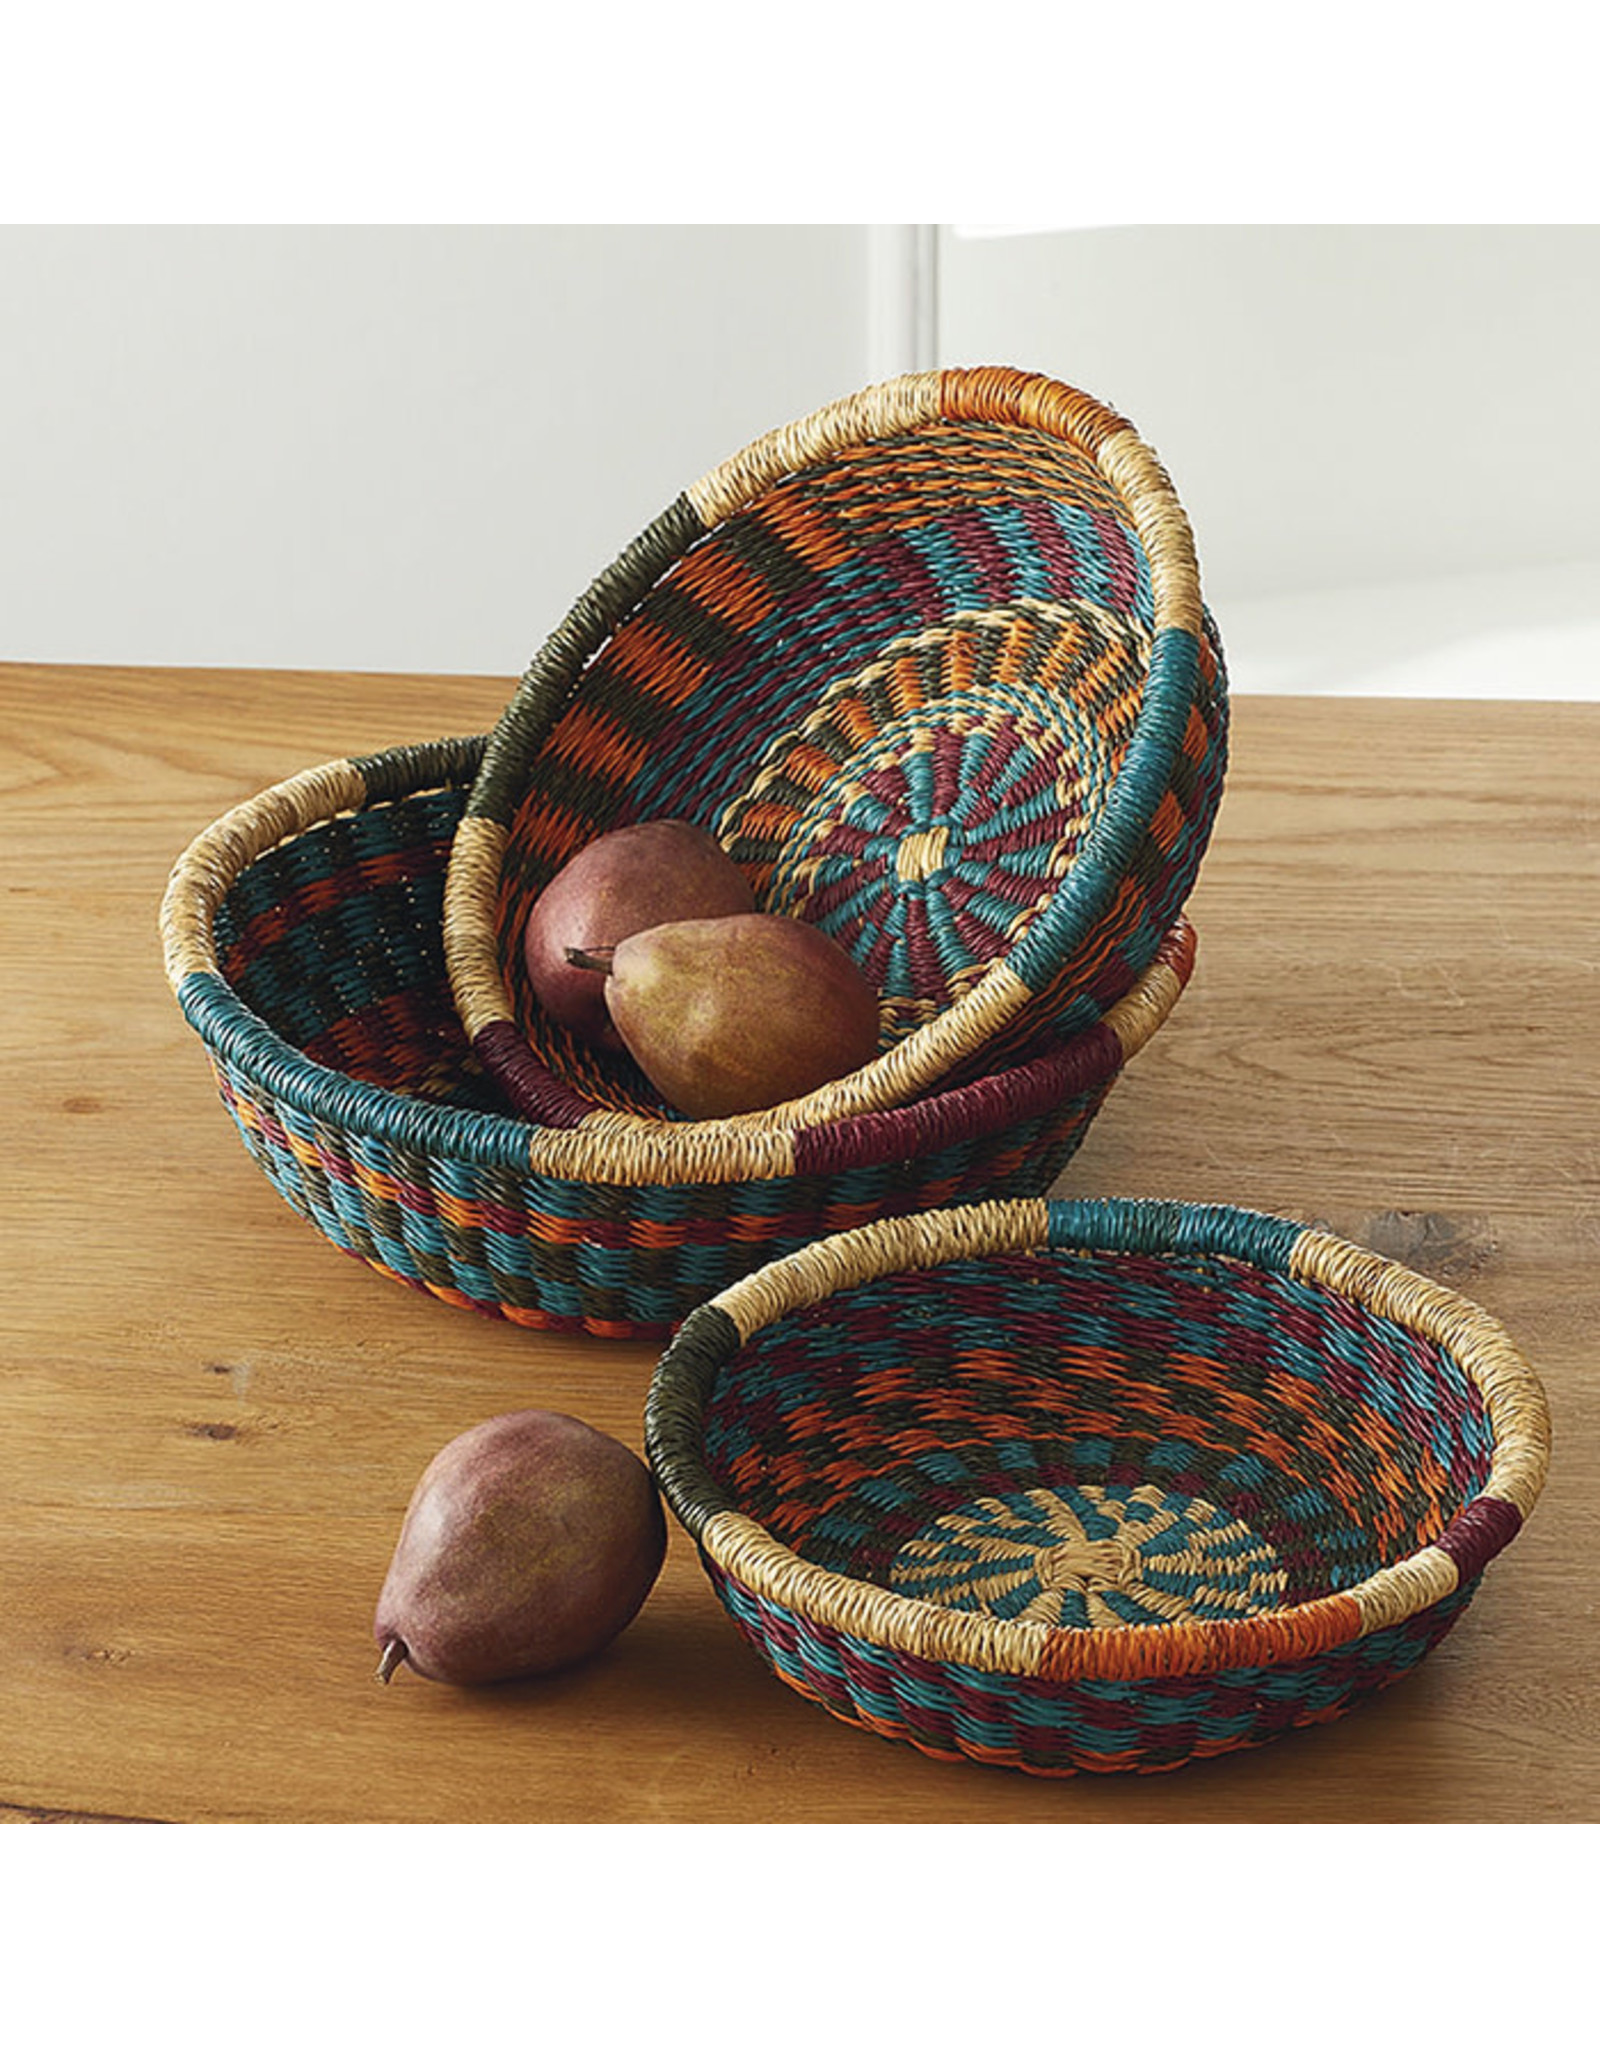 SERRV Nesting Spoke Baskets, set of 3